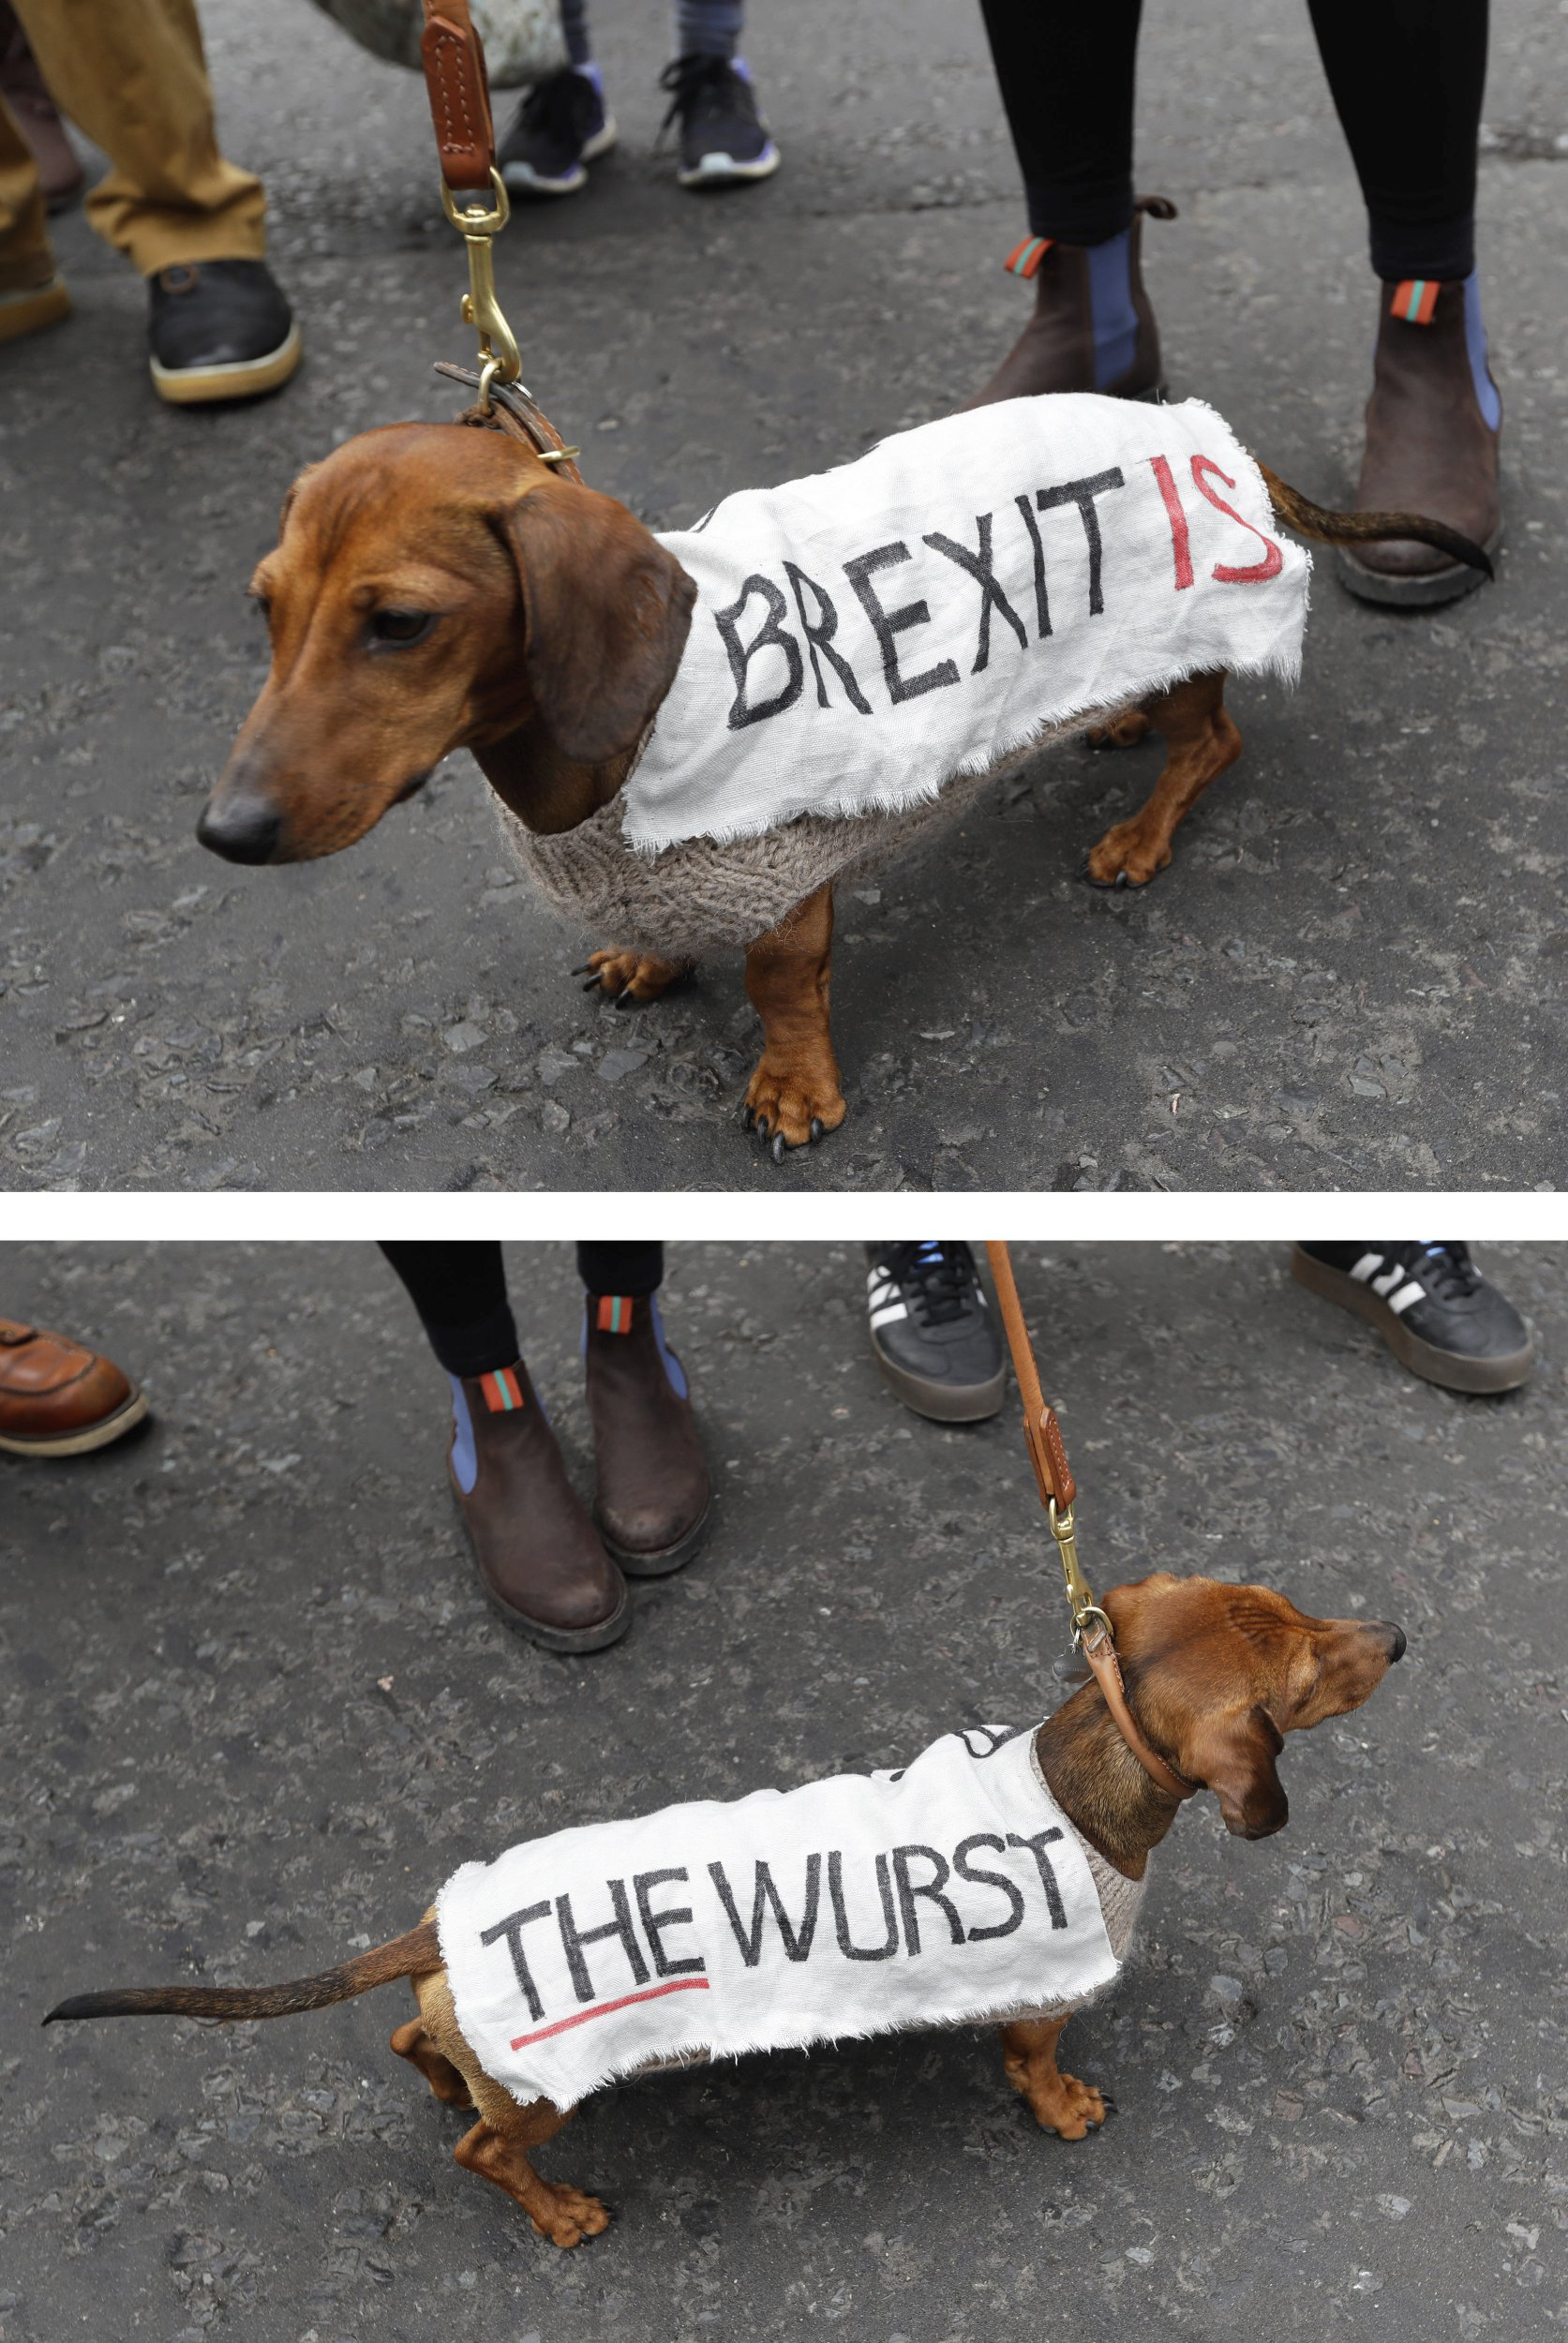 """In this two pictures combo, a dog wears a banner on its coat with the words """"Brexit is the wurst"""" during a Peoples Vote anti-Brexit march in London, Saturday, March 23, 2019. The march, organized by the People's Vote campaign is calling for a final vote on any proposed Brexit deal. This week the EU has granted Britain's Prime Minister Theresa May a delay to the Brexit process. (AP Photo/Kirsty Wigglesworth)"""